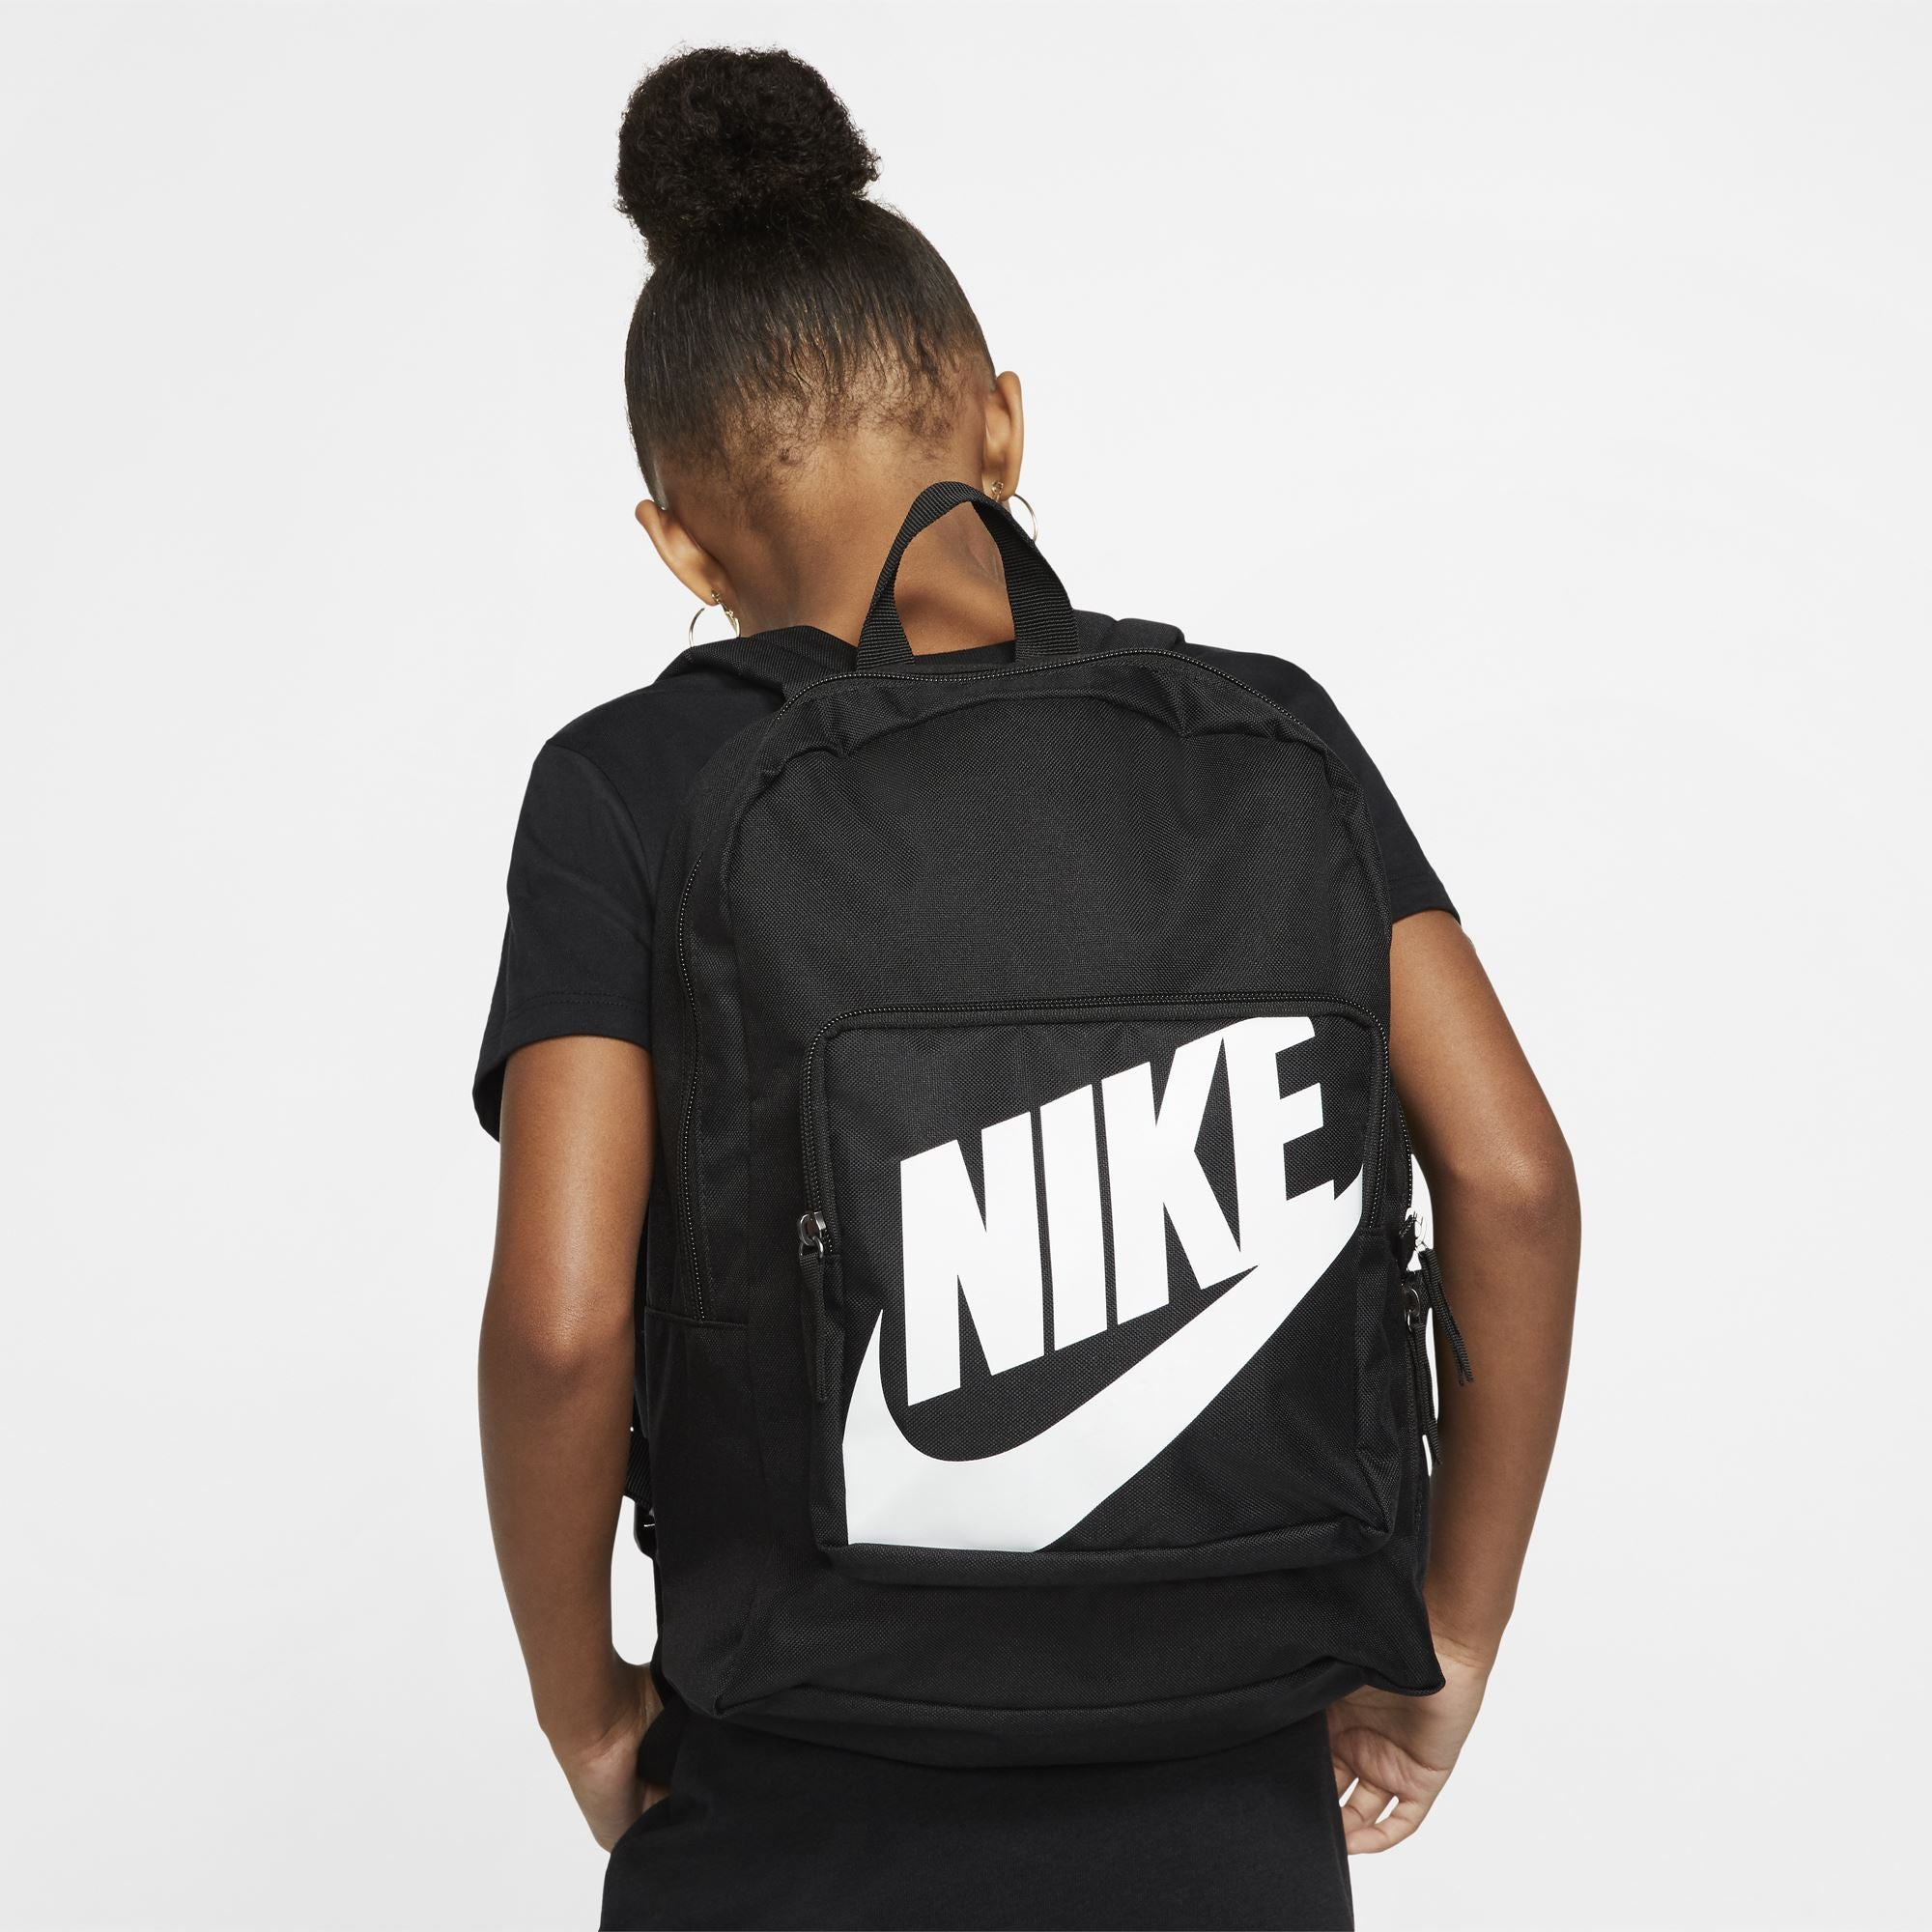 Nike Classic Backpack - Black/Black/White SP-Accessories-Bags Nike